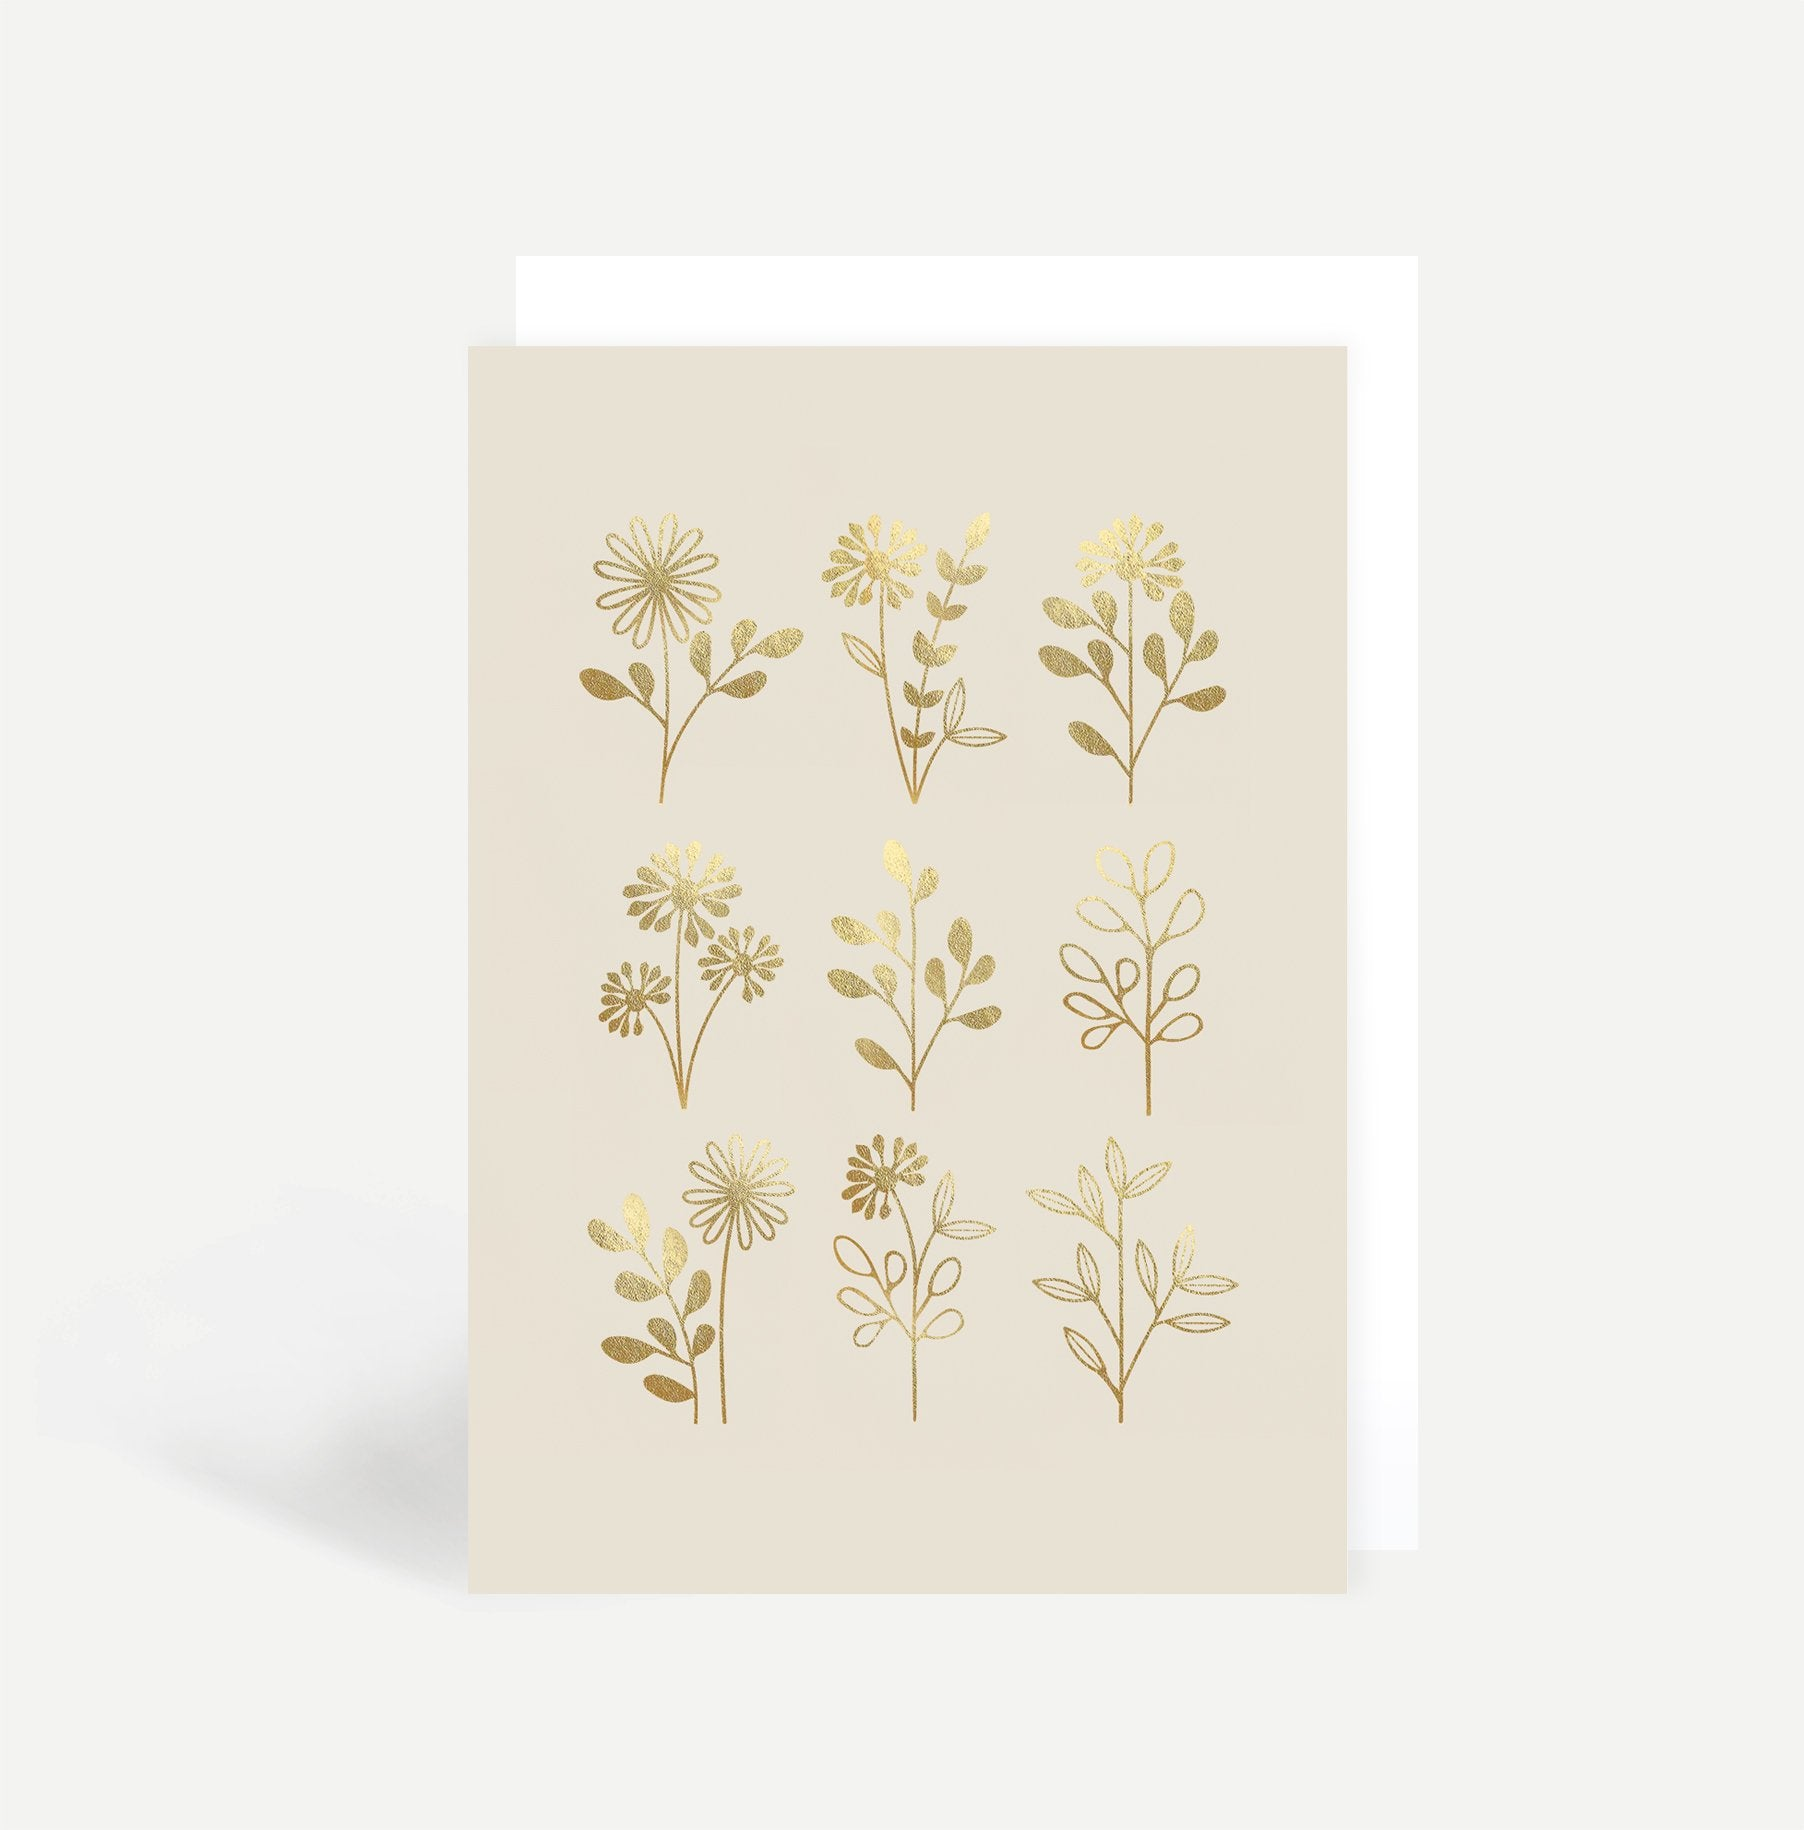 Illustrated Flowers Greetings Card